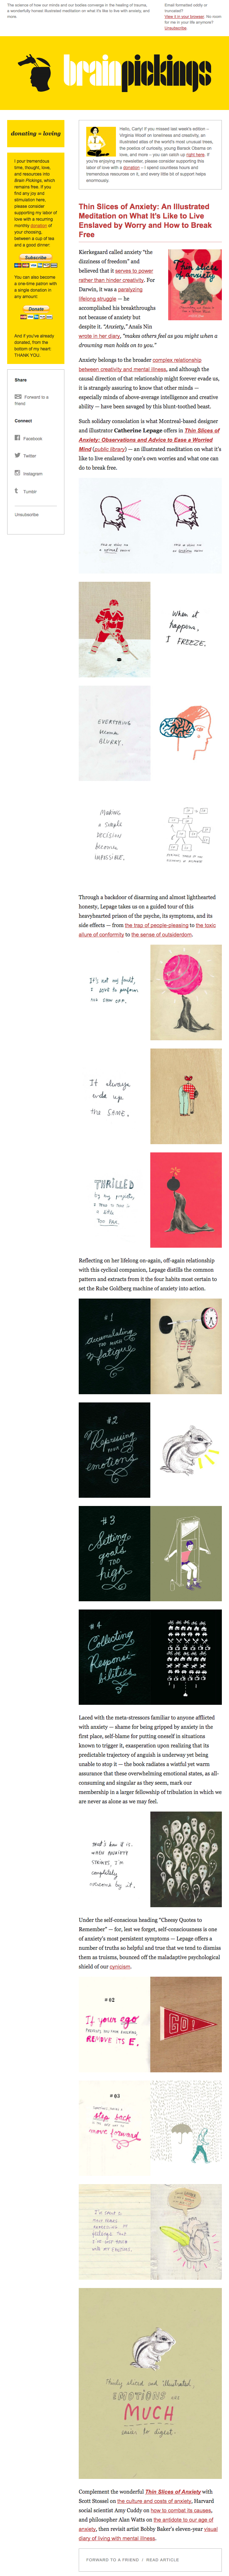 Email newsletter example design with links, clips, and images by BrainPickings